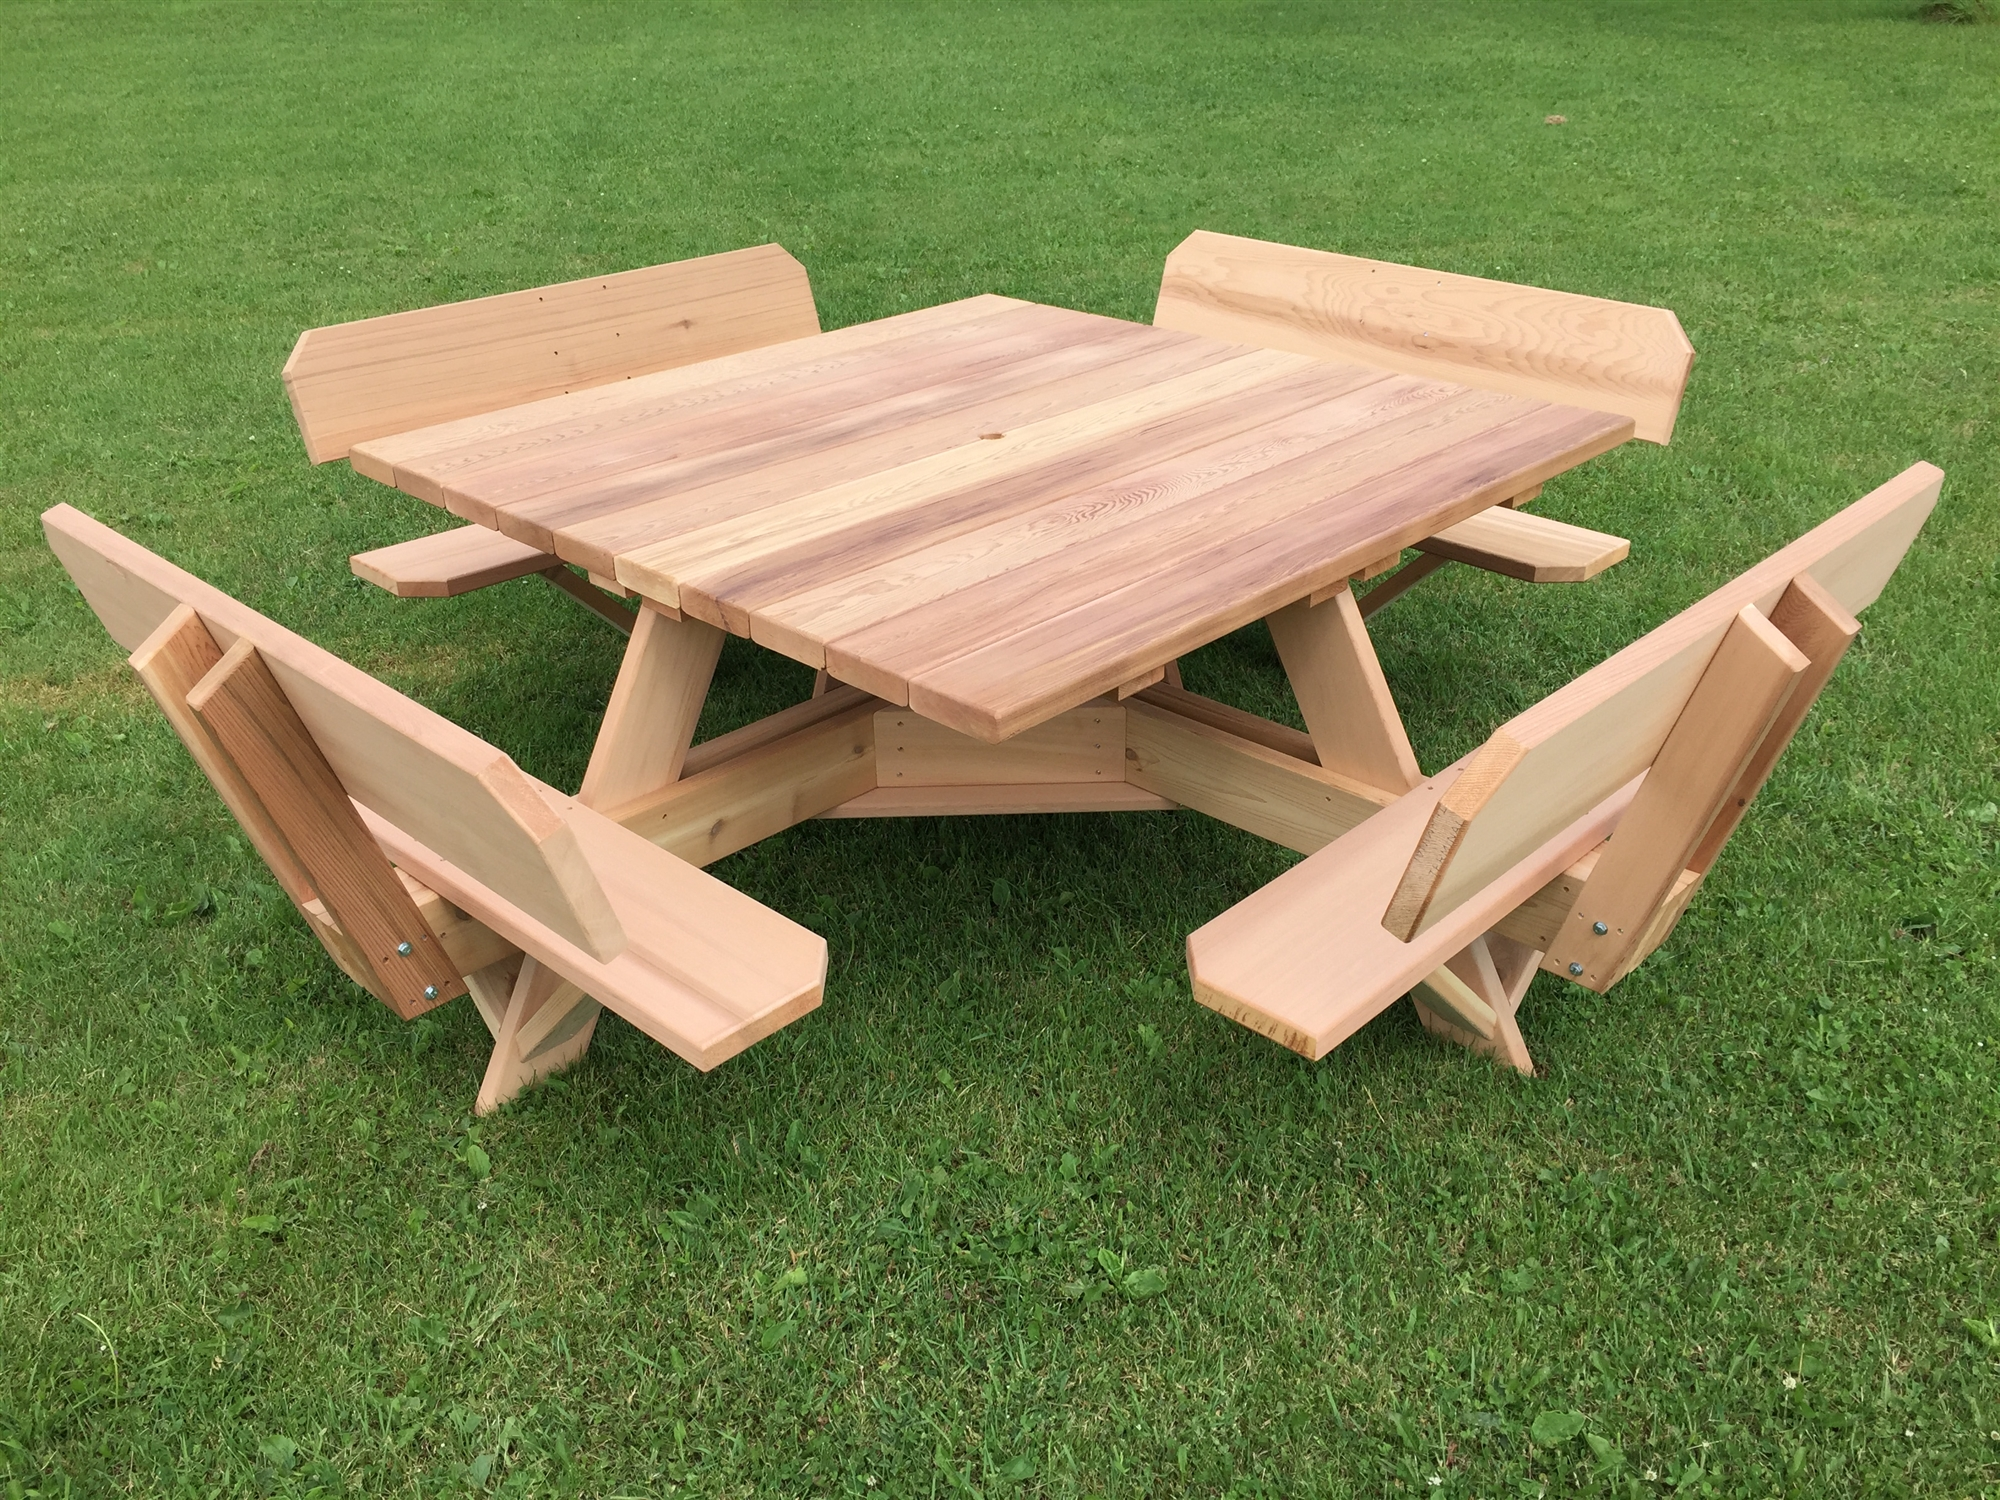 56 western red cedar picnic table with backed benches. Black Bedroom Furniture Sets. Home Design Ideas